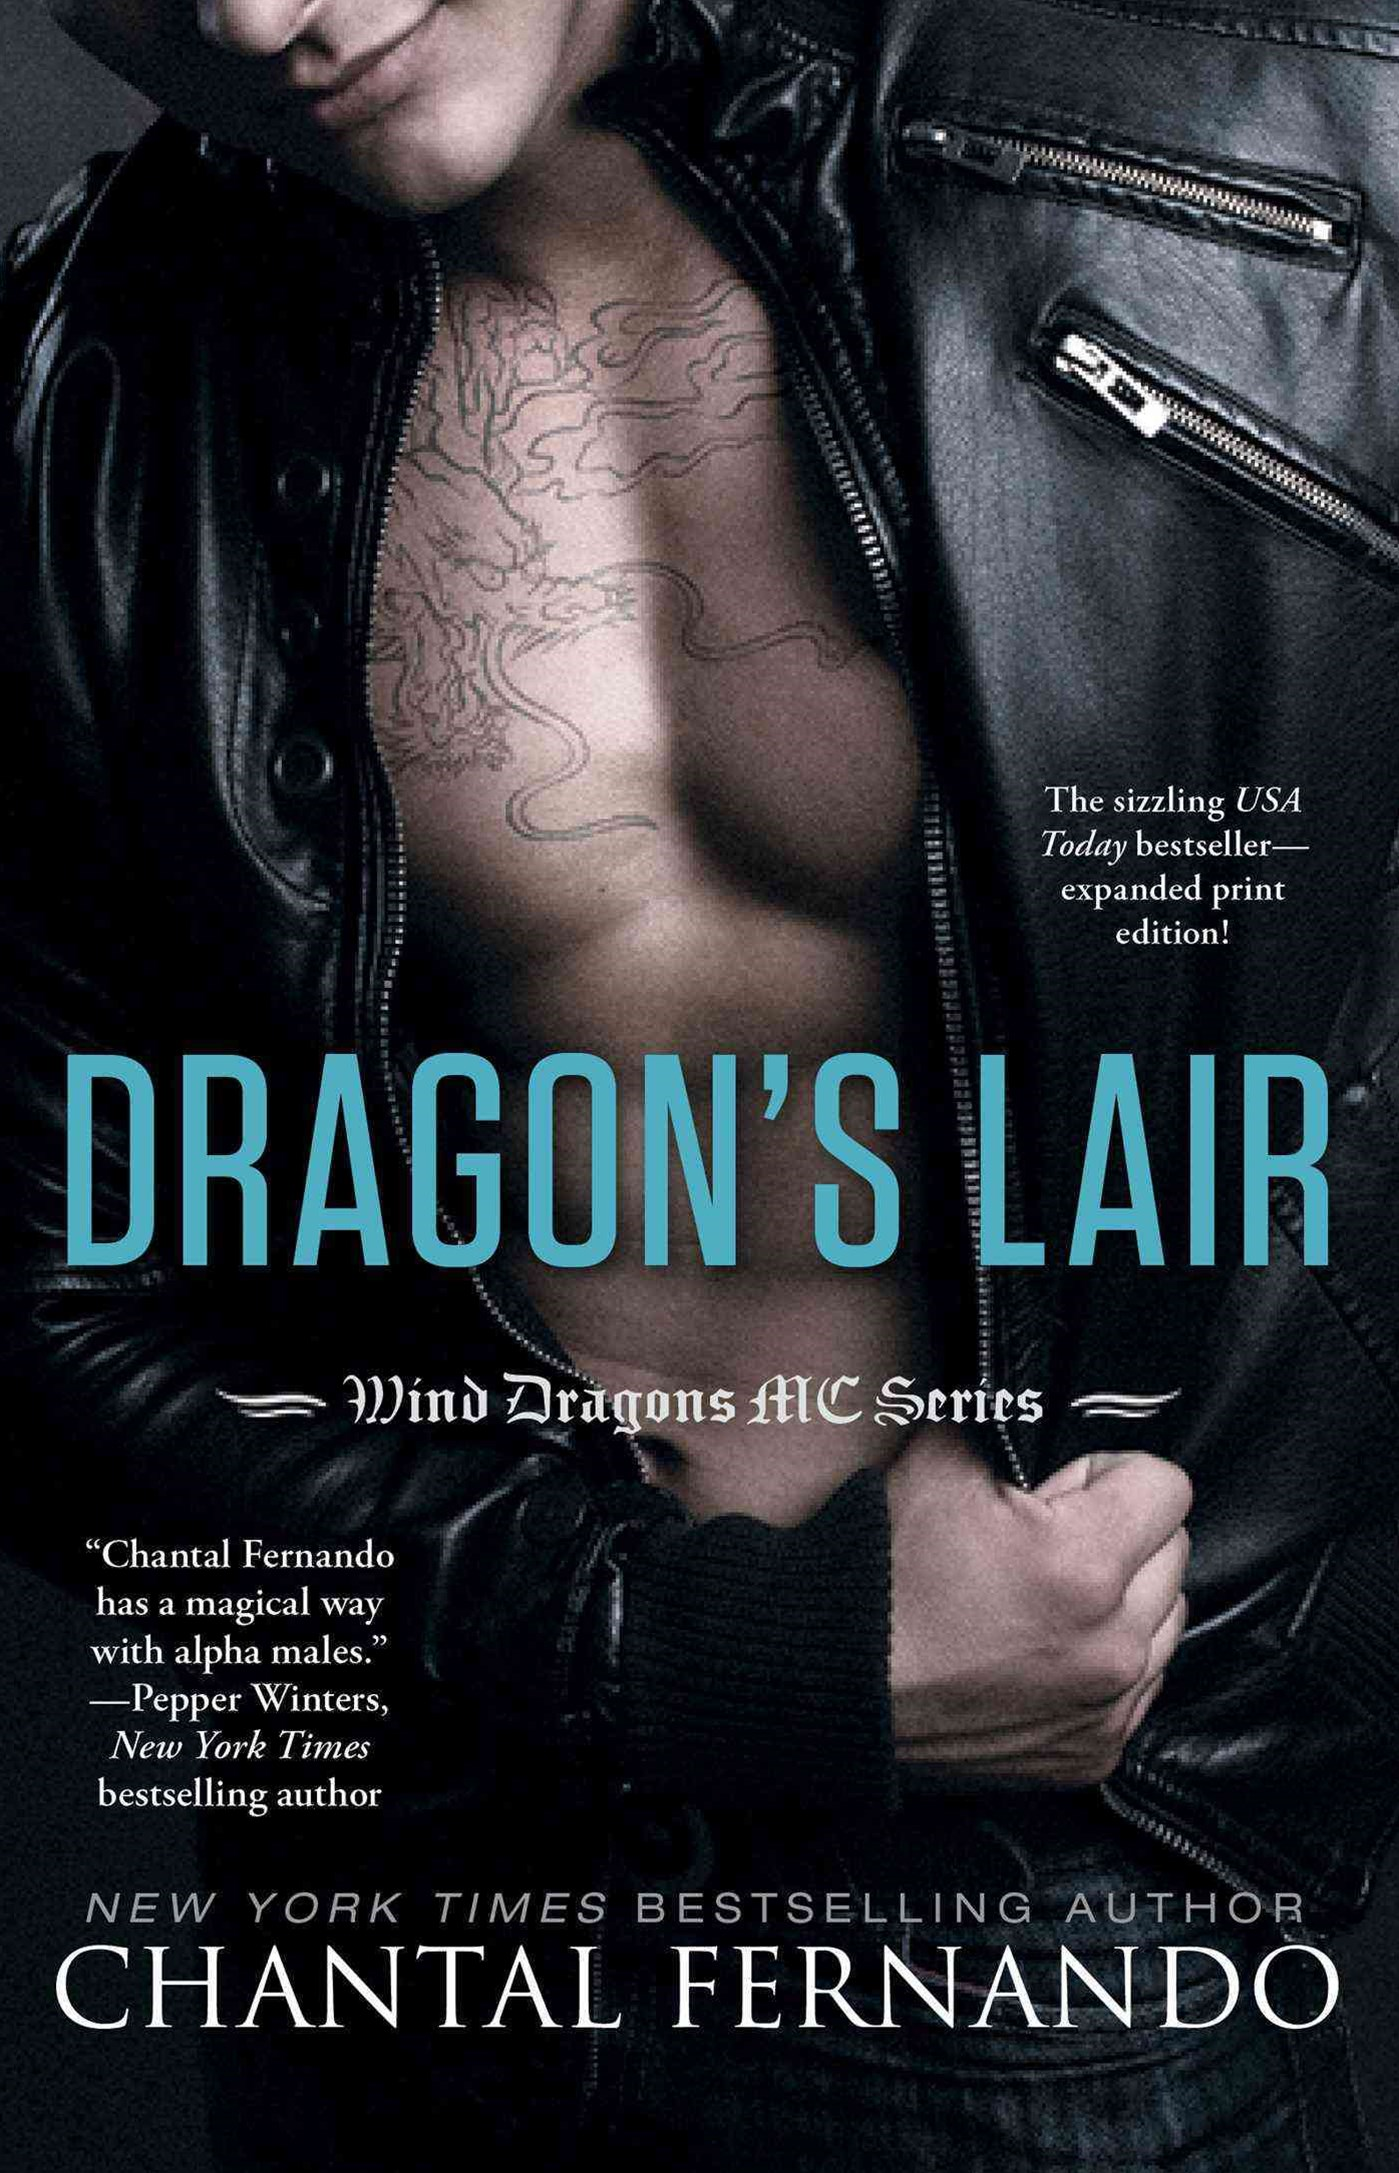 Wind Dragons Motorcycle Club: Dragon's Lair